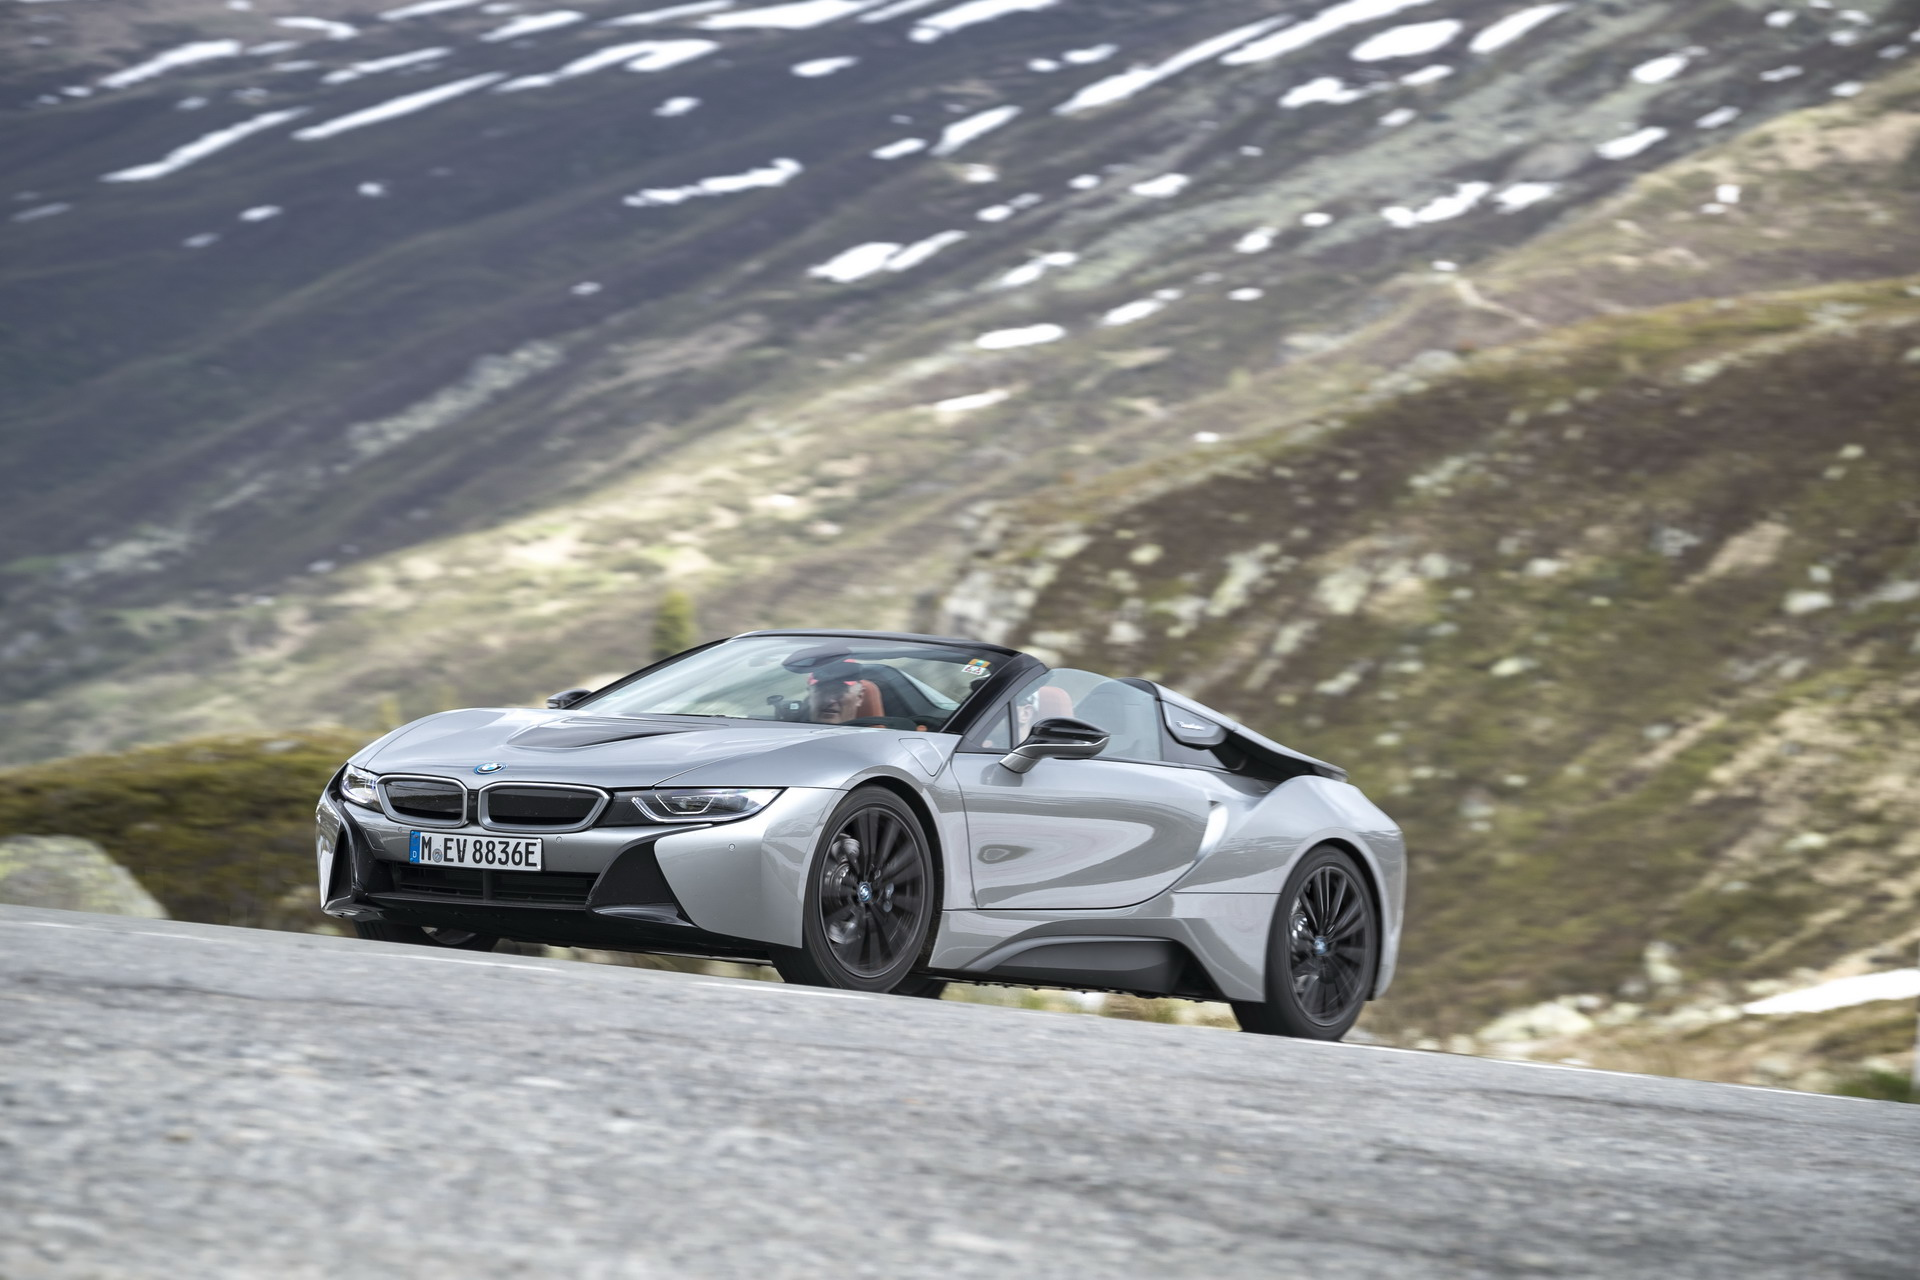 The BMW i8 Roadster I15 182